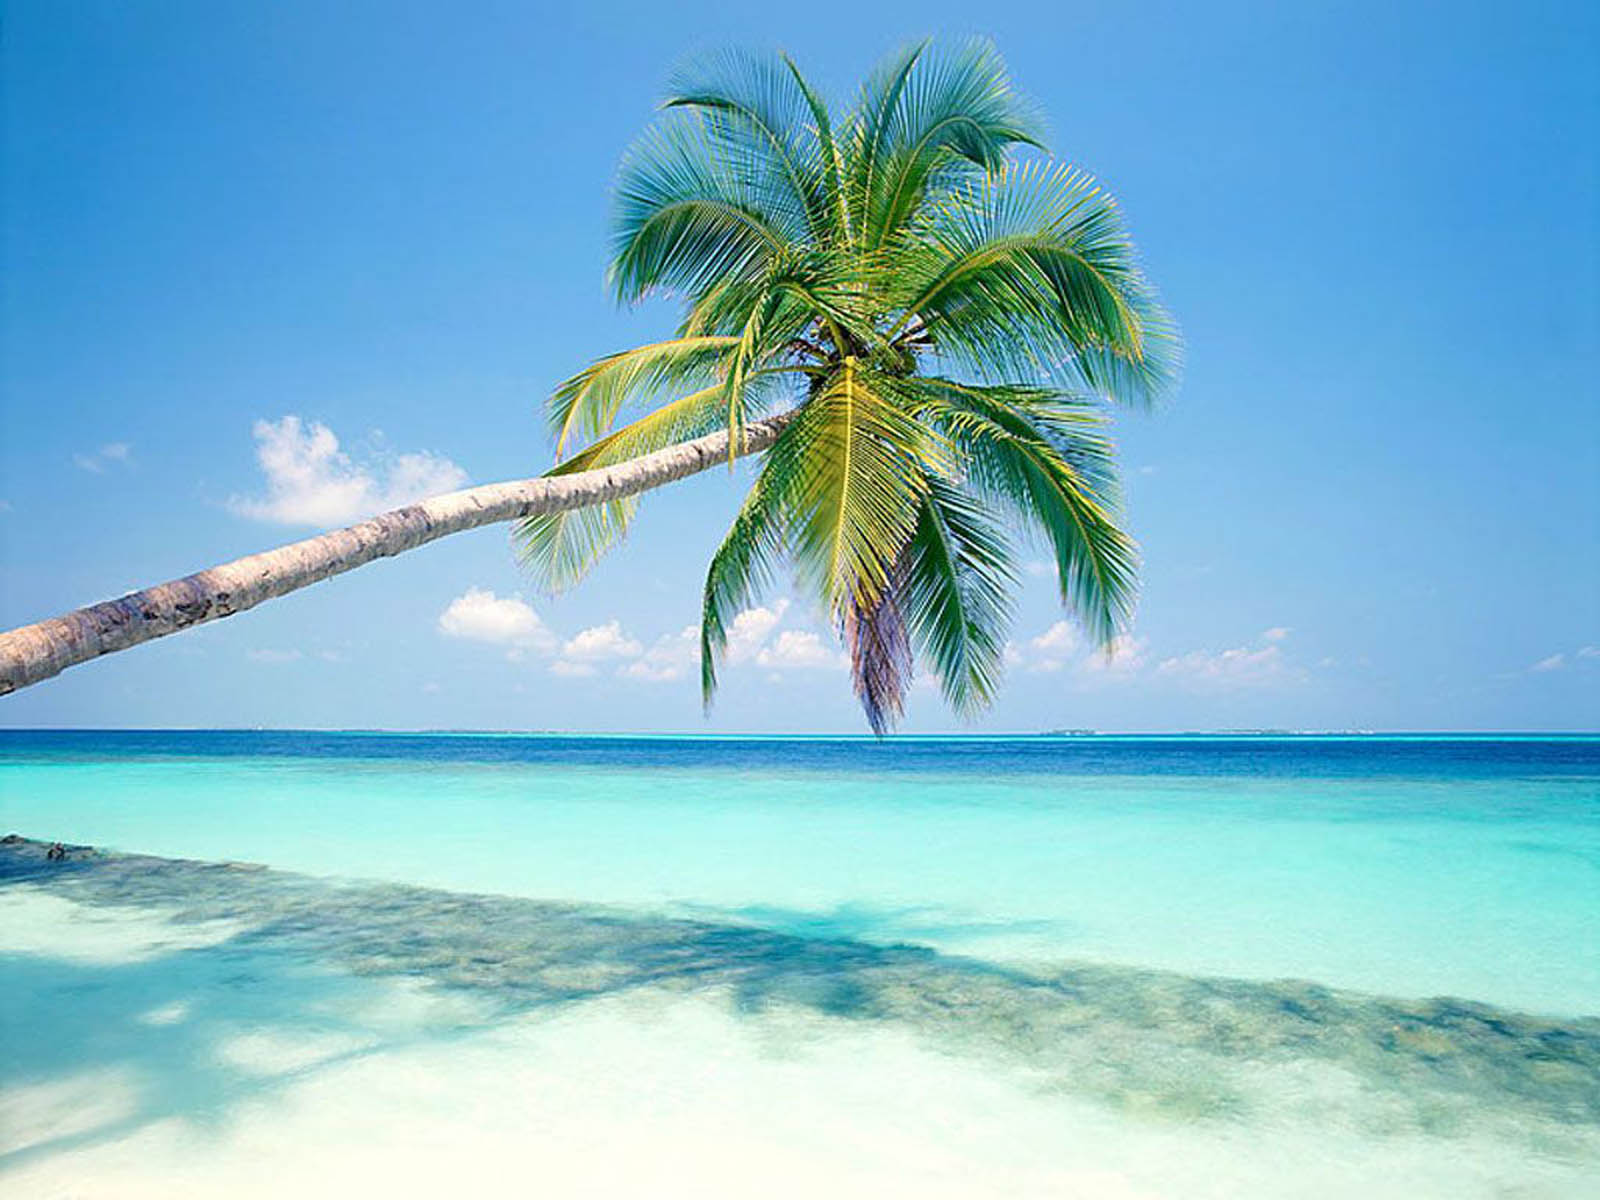 Tag Palm Trees Wallpapers Backgrounds Photos Images and Pictures 1600x1200